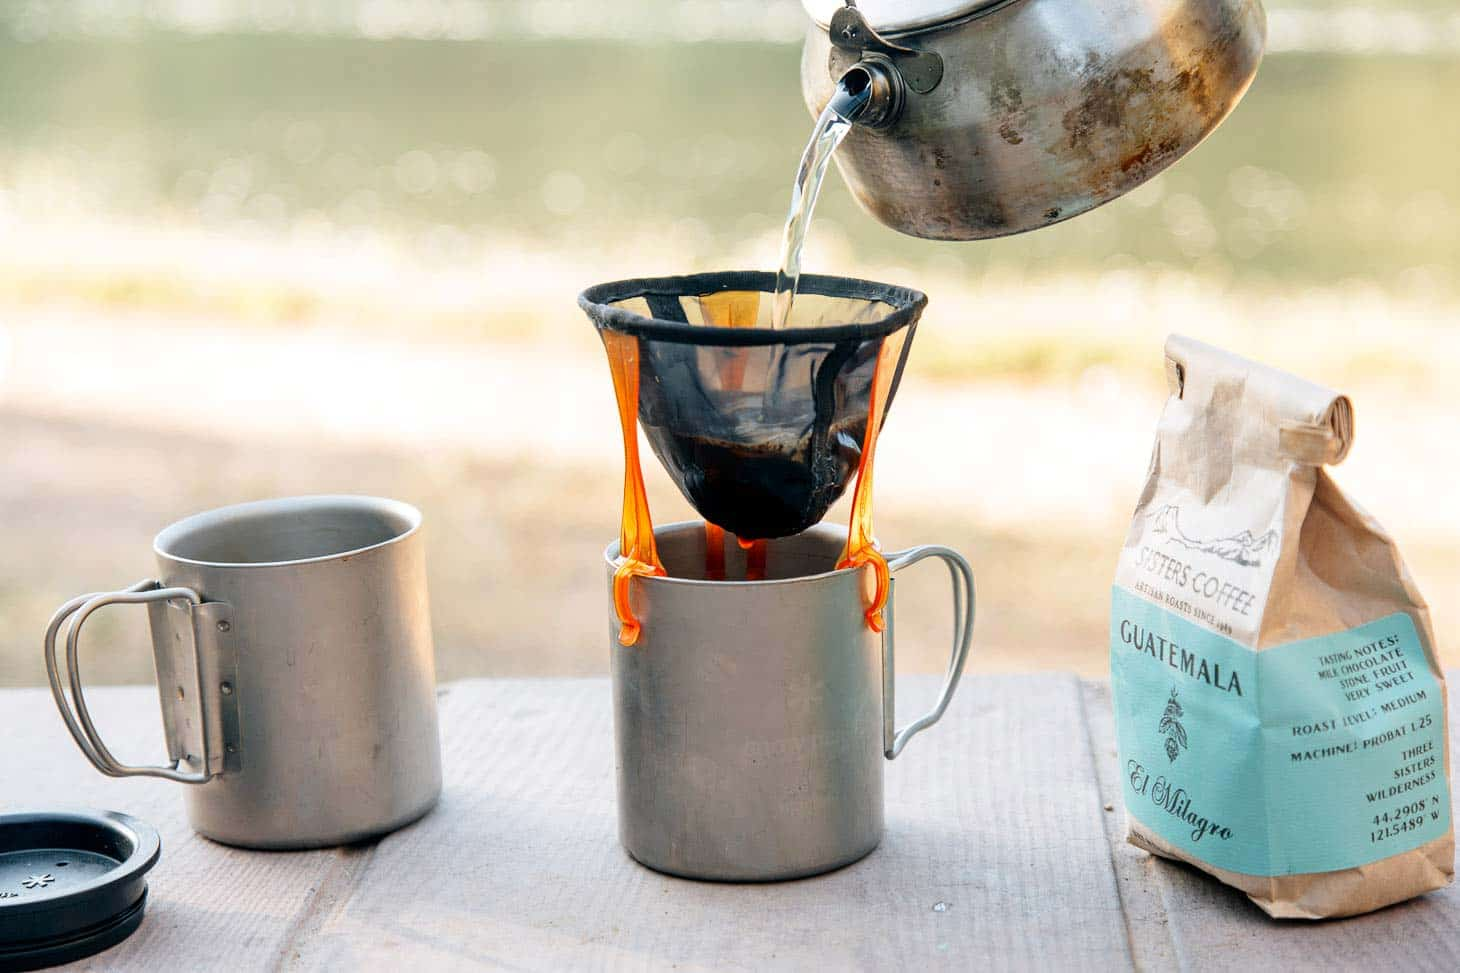 13 WAYS TO PREPARE A CAMPING COFFEE